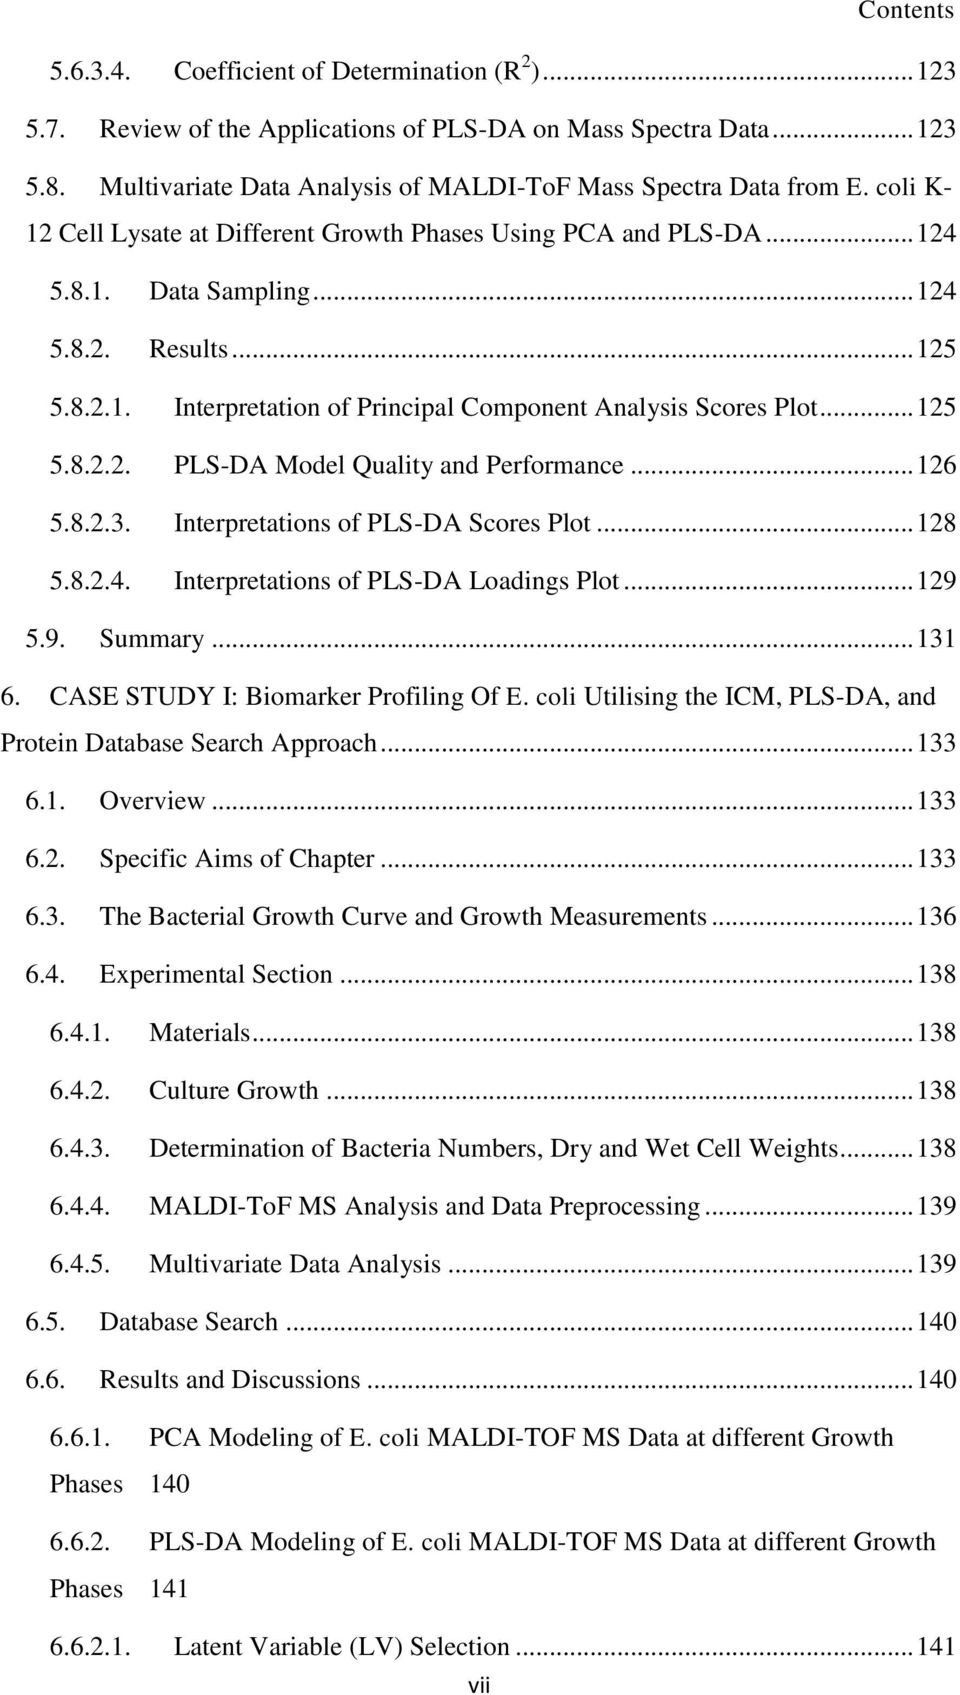 .. 125 5.8.2.2. PLS-DA Model Quality and Performance... 126 5.8.2.3. Interpretations of PLS-DA Scores Plot... 128 5.8.2.4. Interpretations of PLS-DA Loadings Plot... 129 5.9. Summary... 131 6.